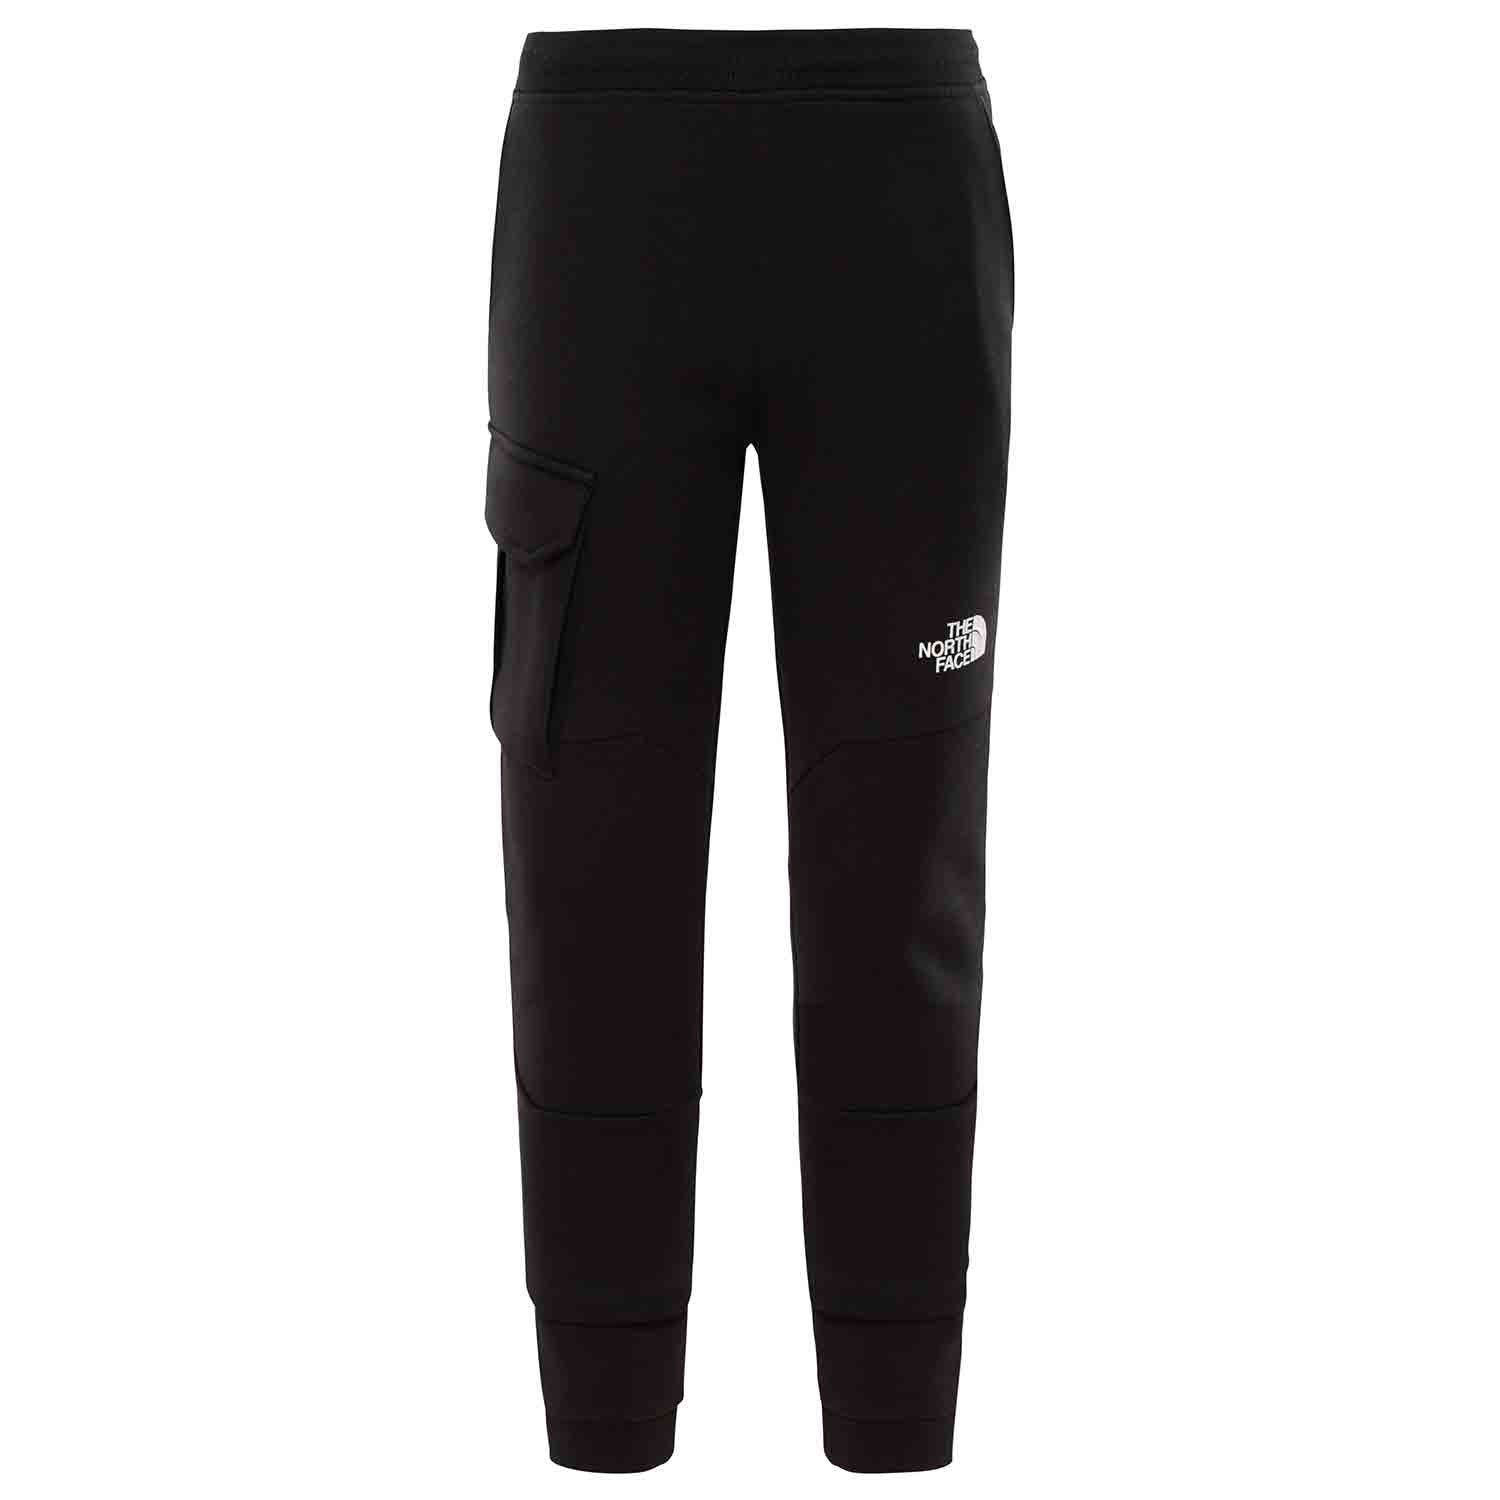 0a39836ae Details about The North Face Drew Peak Po Kids Pants Jogging - Tnf Black  White All Sizes